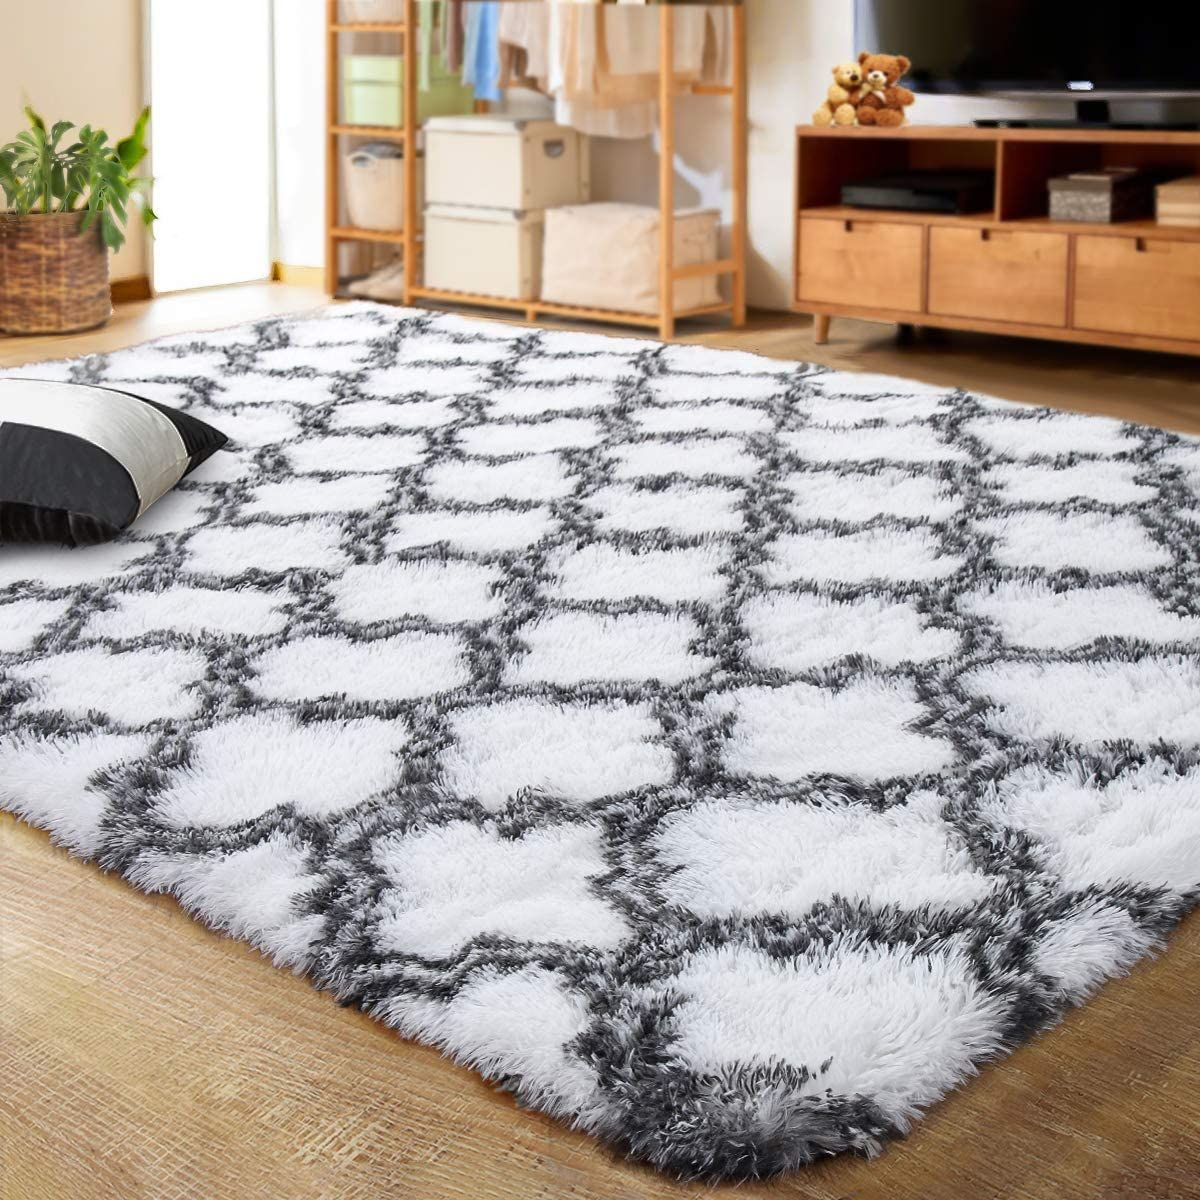 Fluffy, luxurious area rug. Cozy home decor. #whiterug #luxuryhomedecor #affordableluxury #cozydecor #arearugs #affiliate